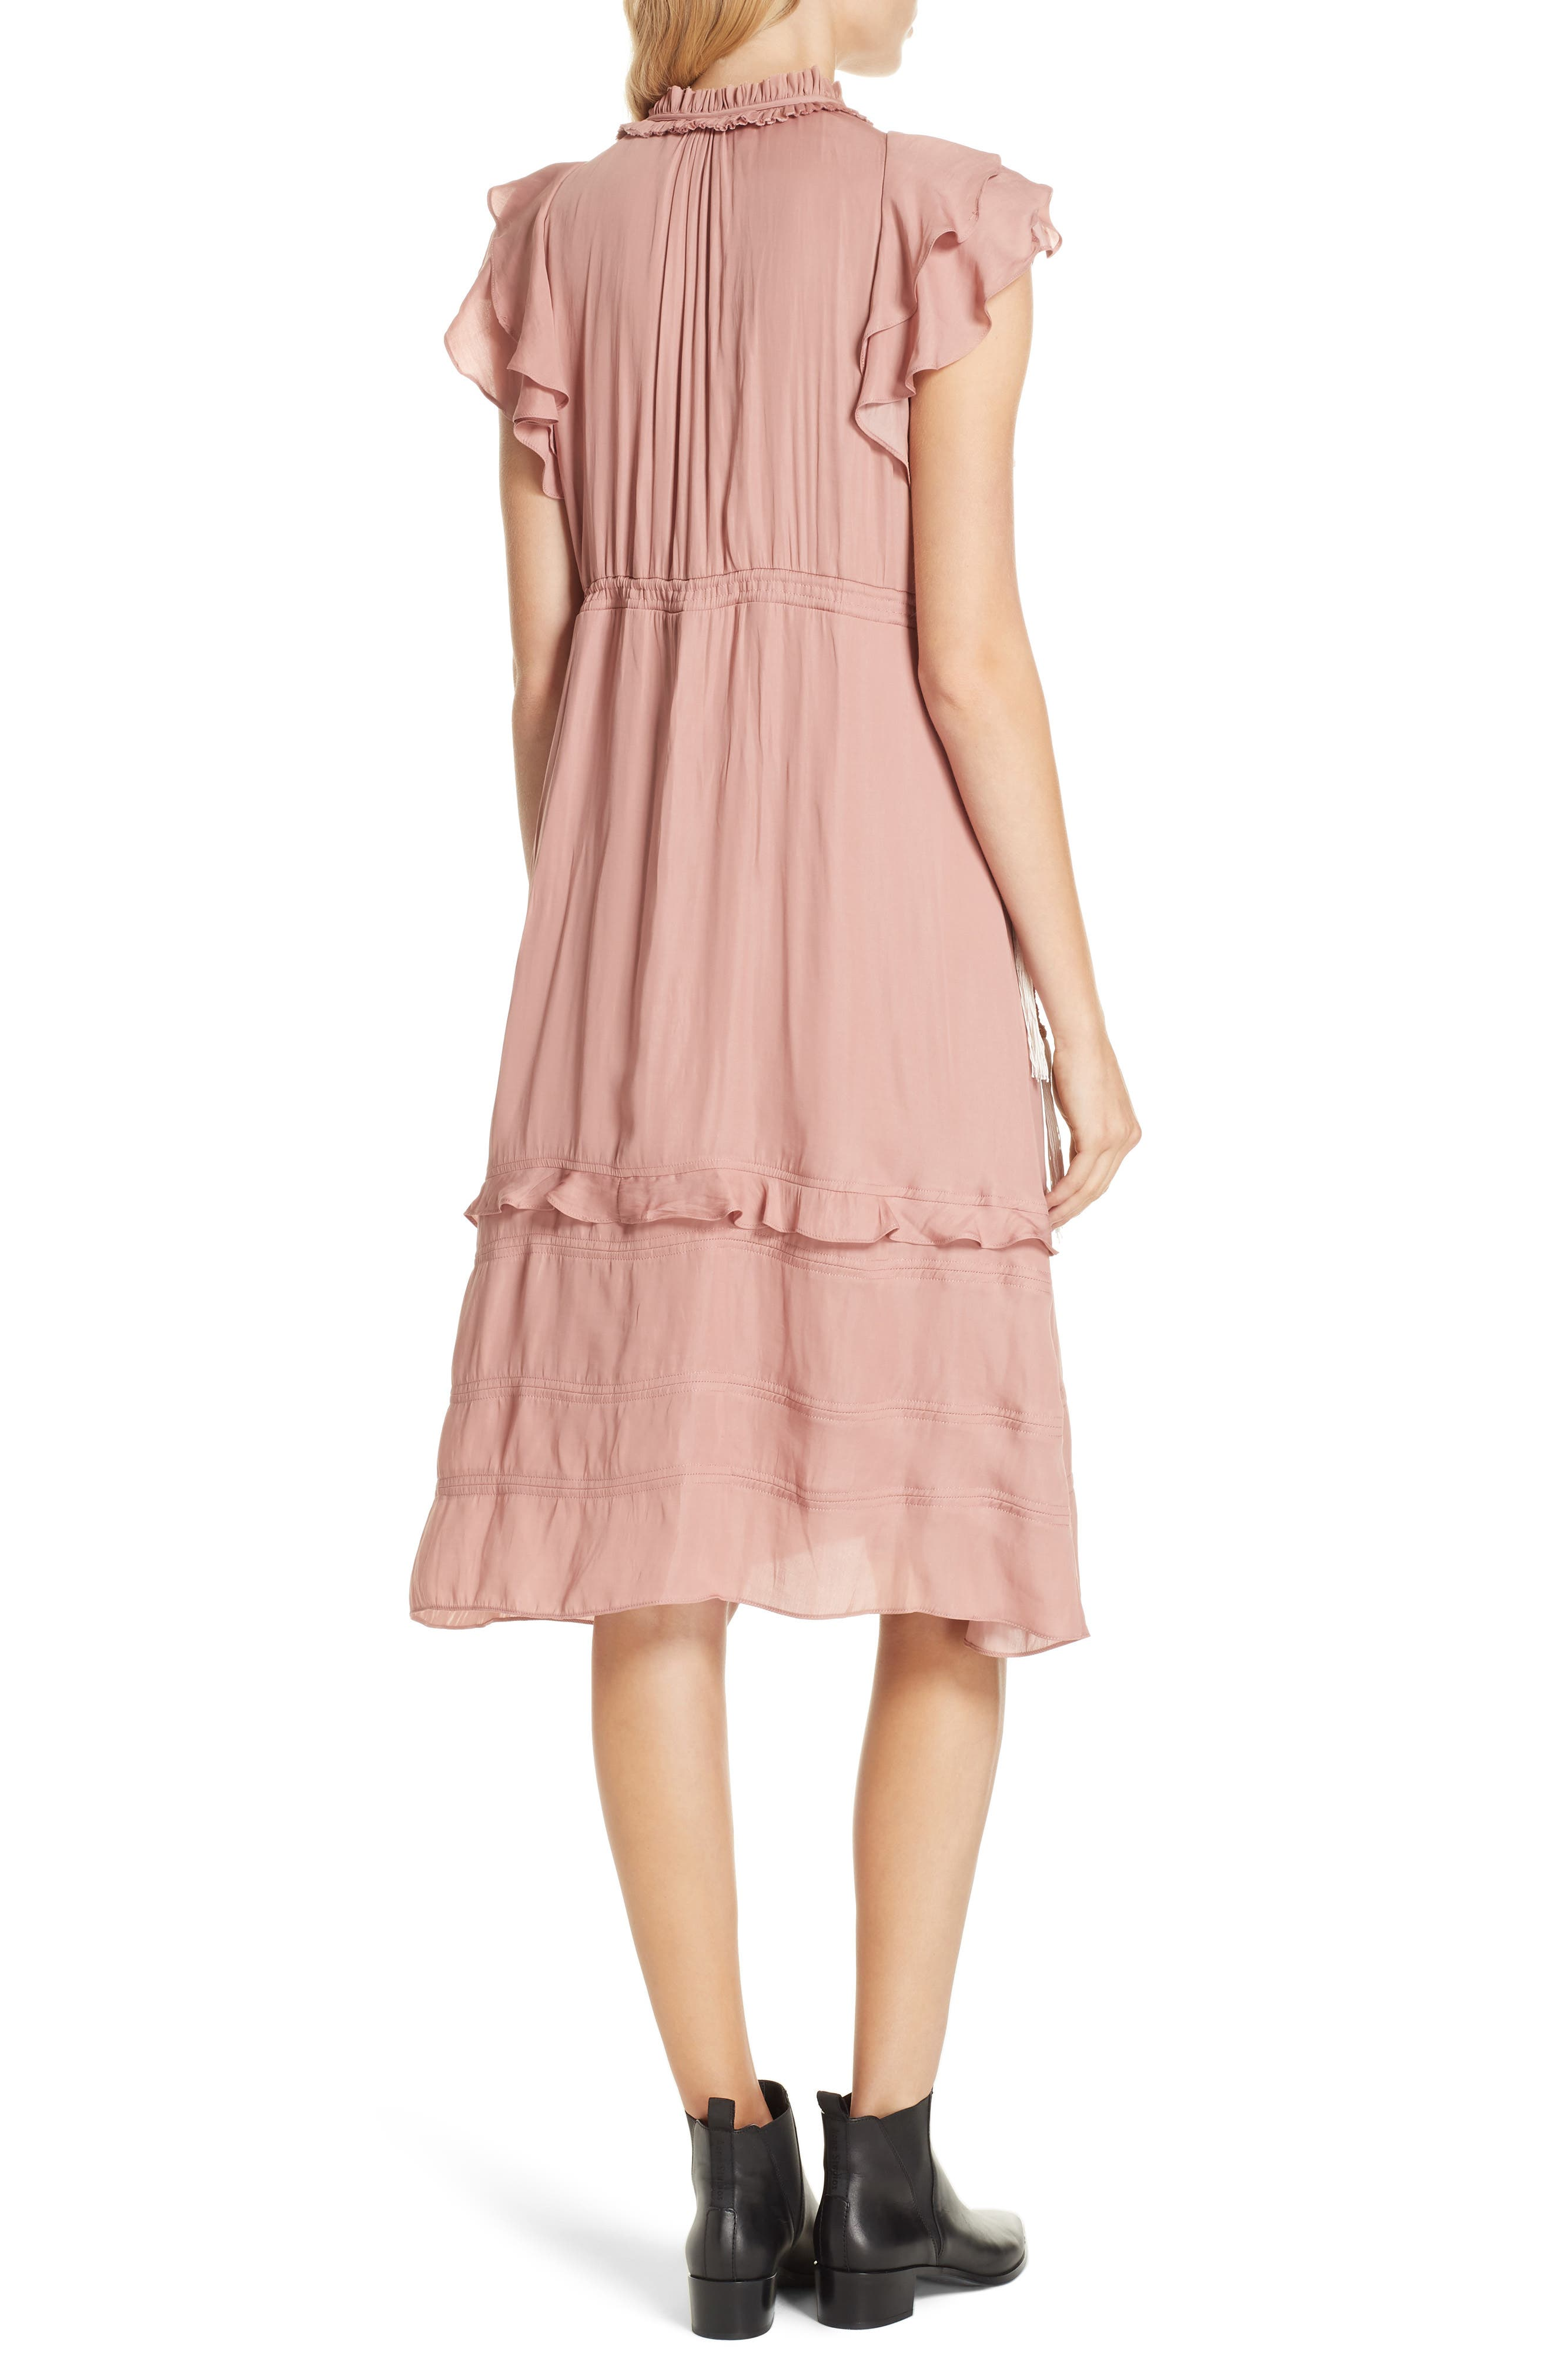 Tassel Tie Midi Dress,                             Alternate thumbnail 2, color,                             ROSE WOOD